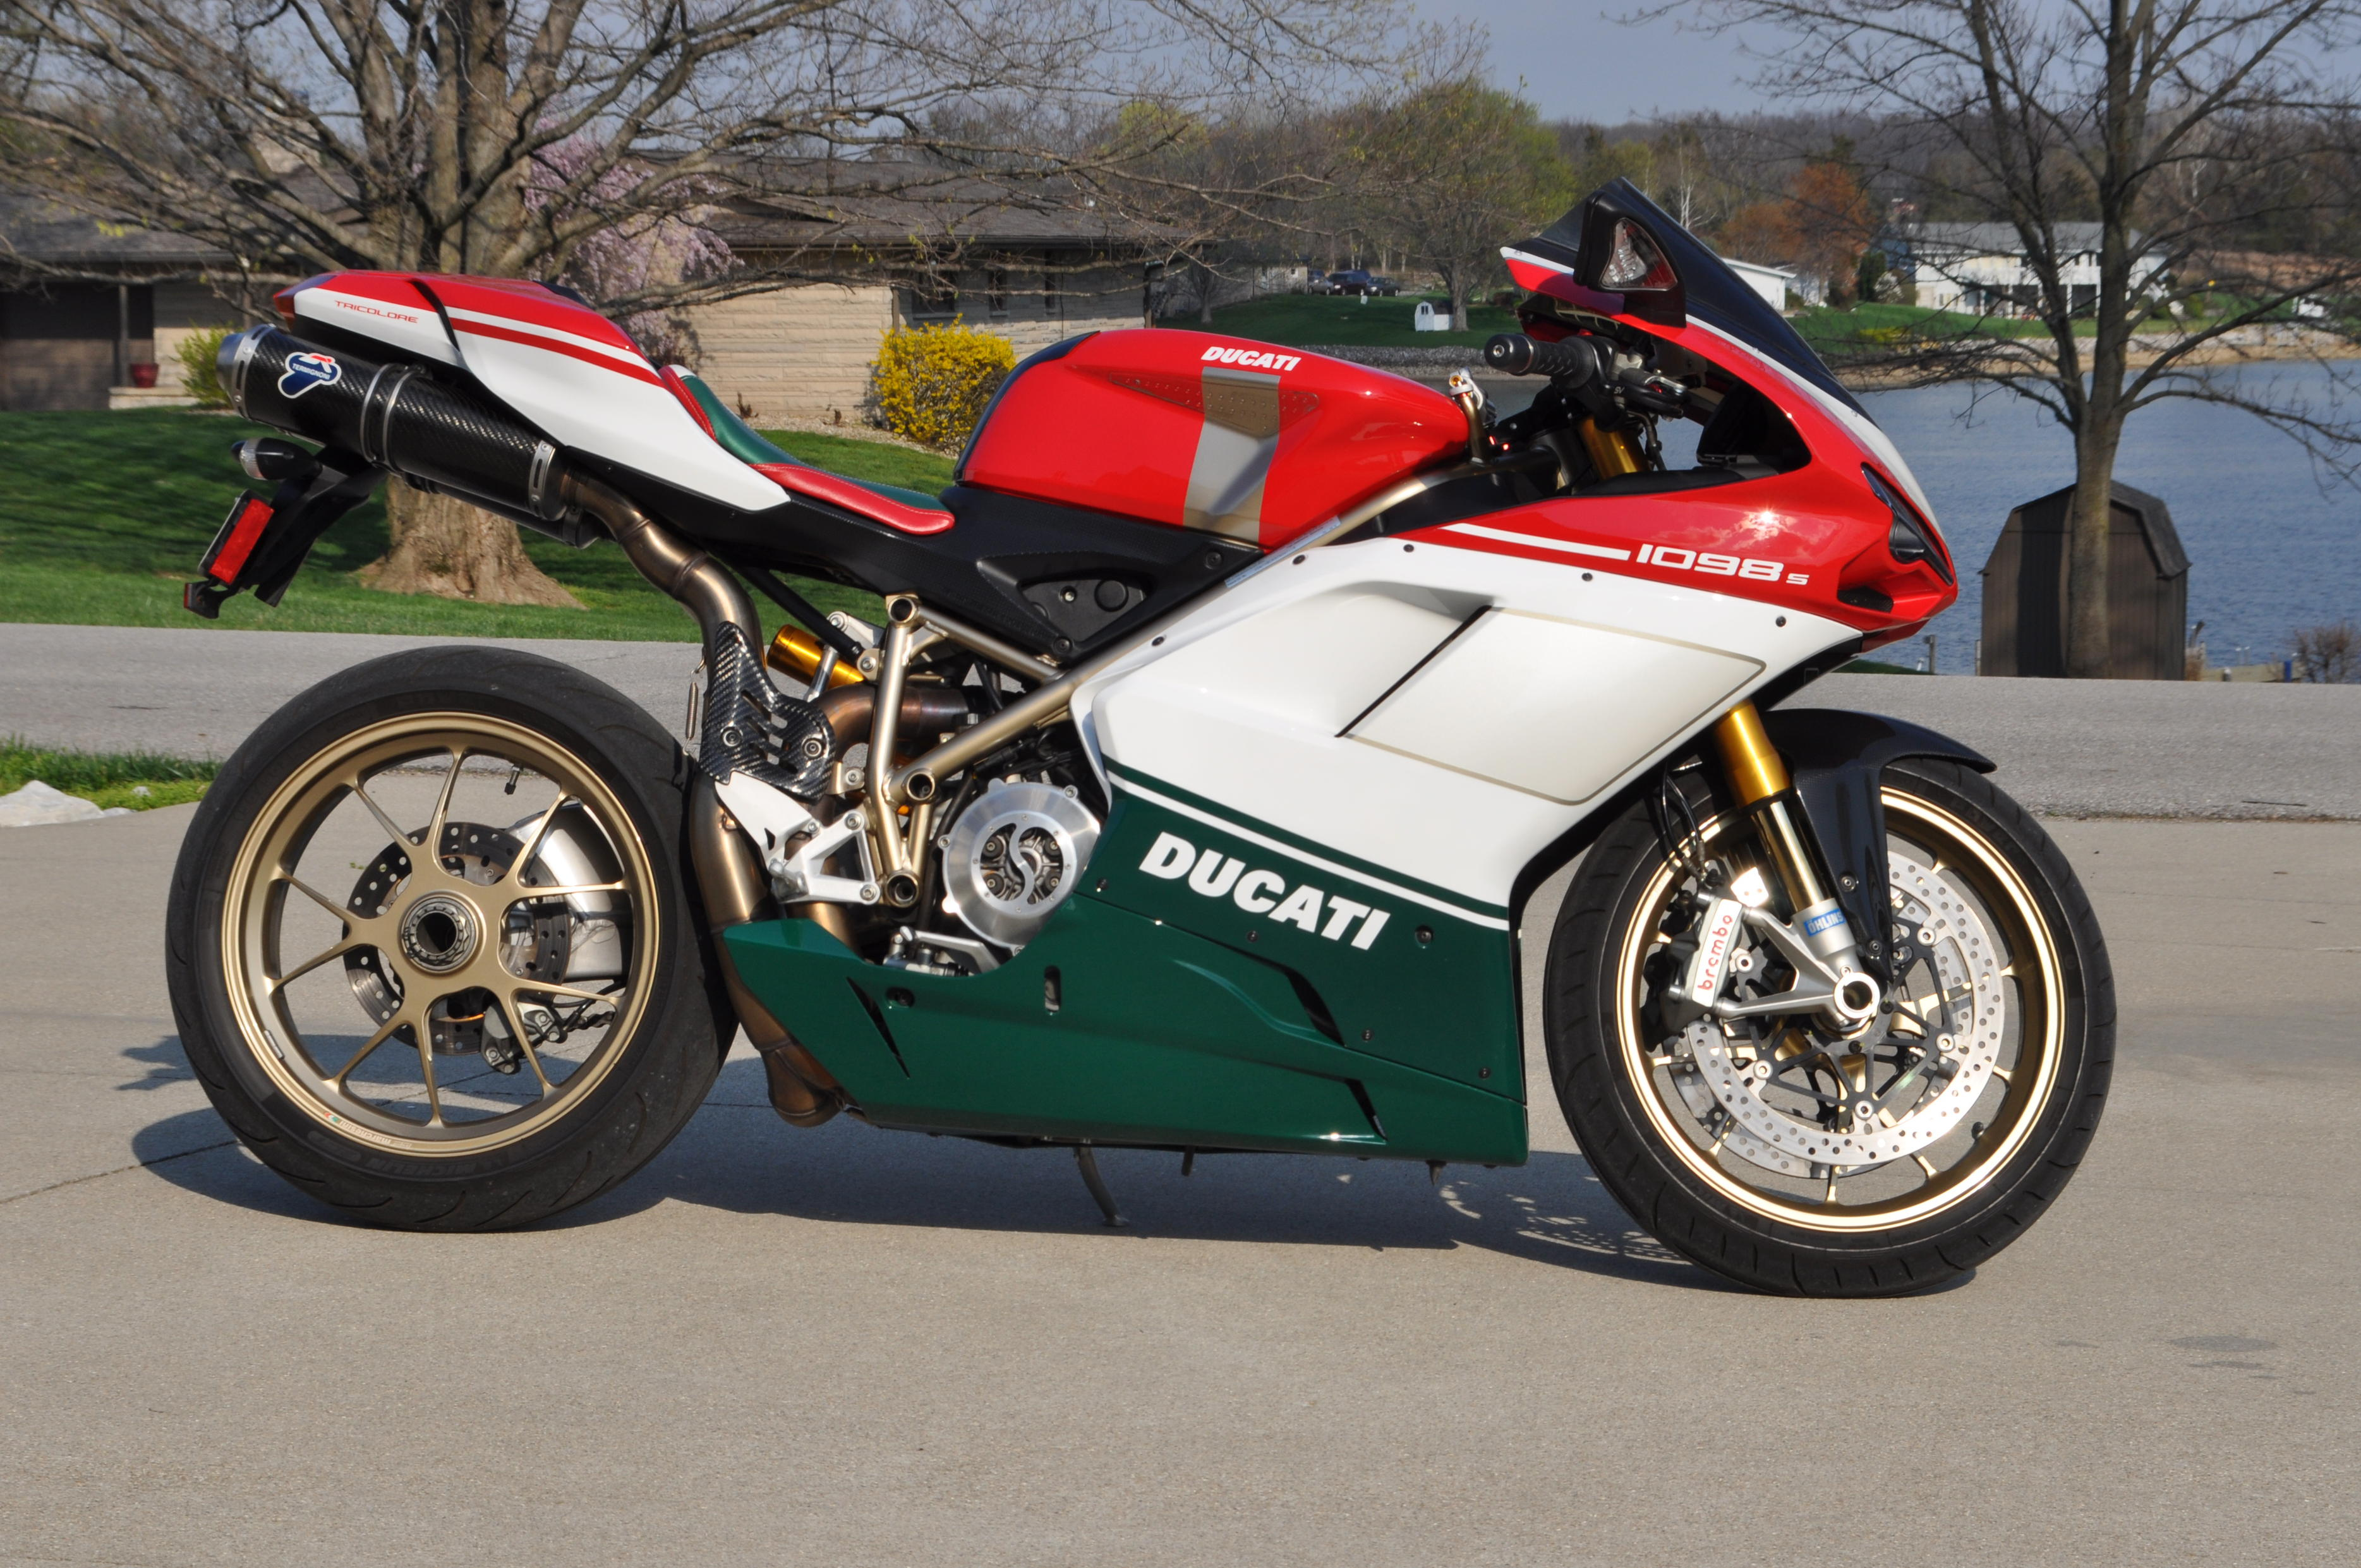 For Sale * 2007 1098s Tricolore * - ducati.org forum | the home for ...